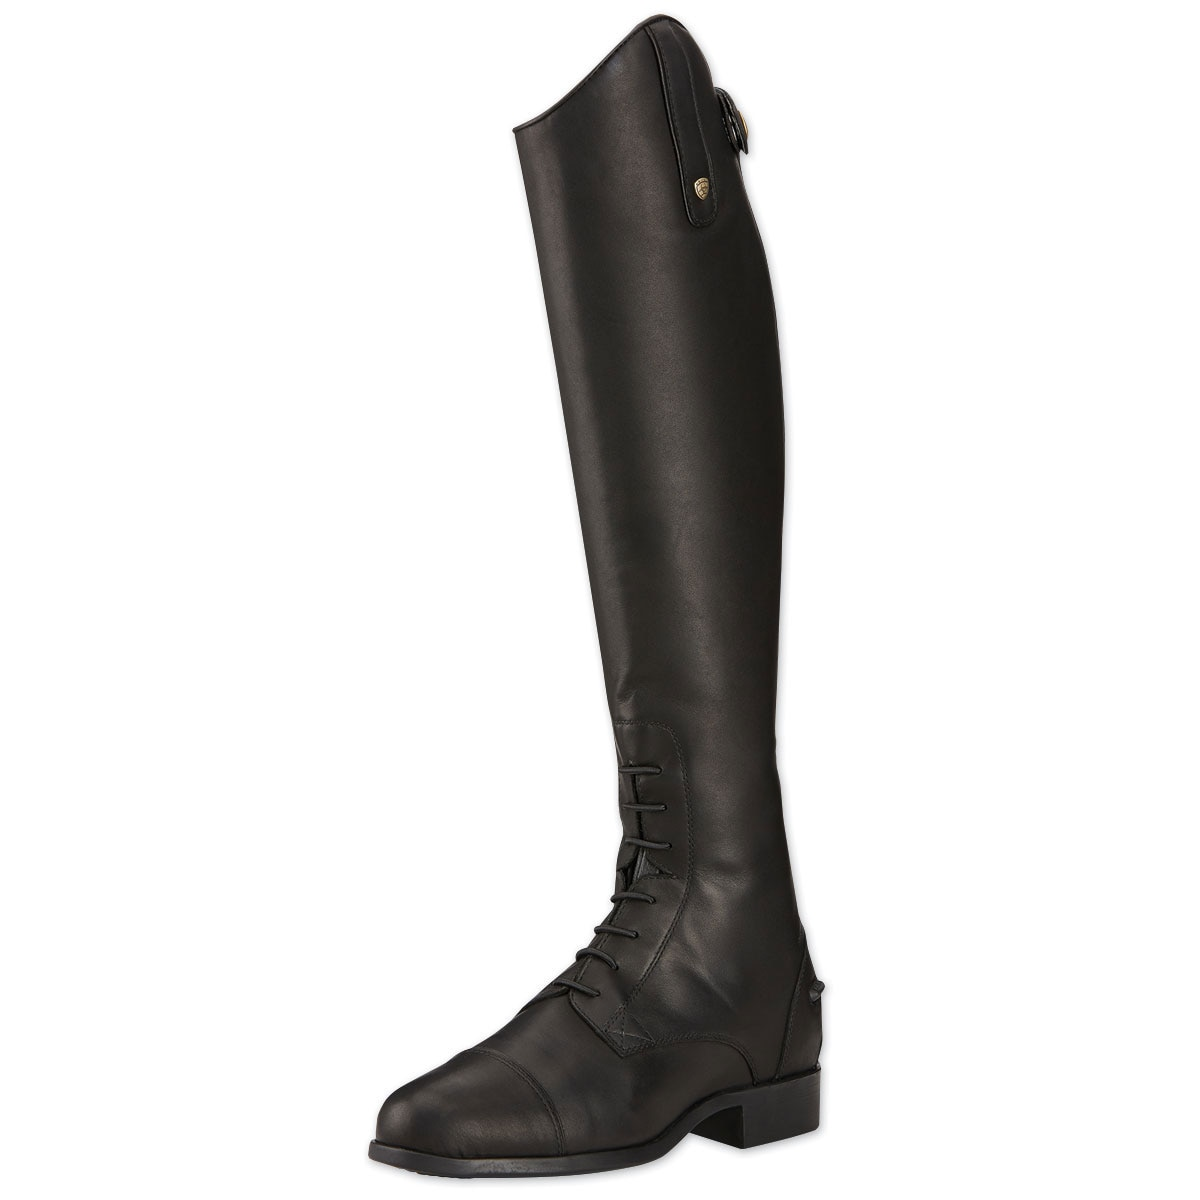 Ariat Heritage Compass H2O Tall Boots